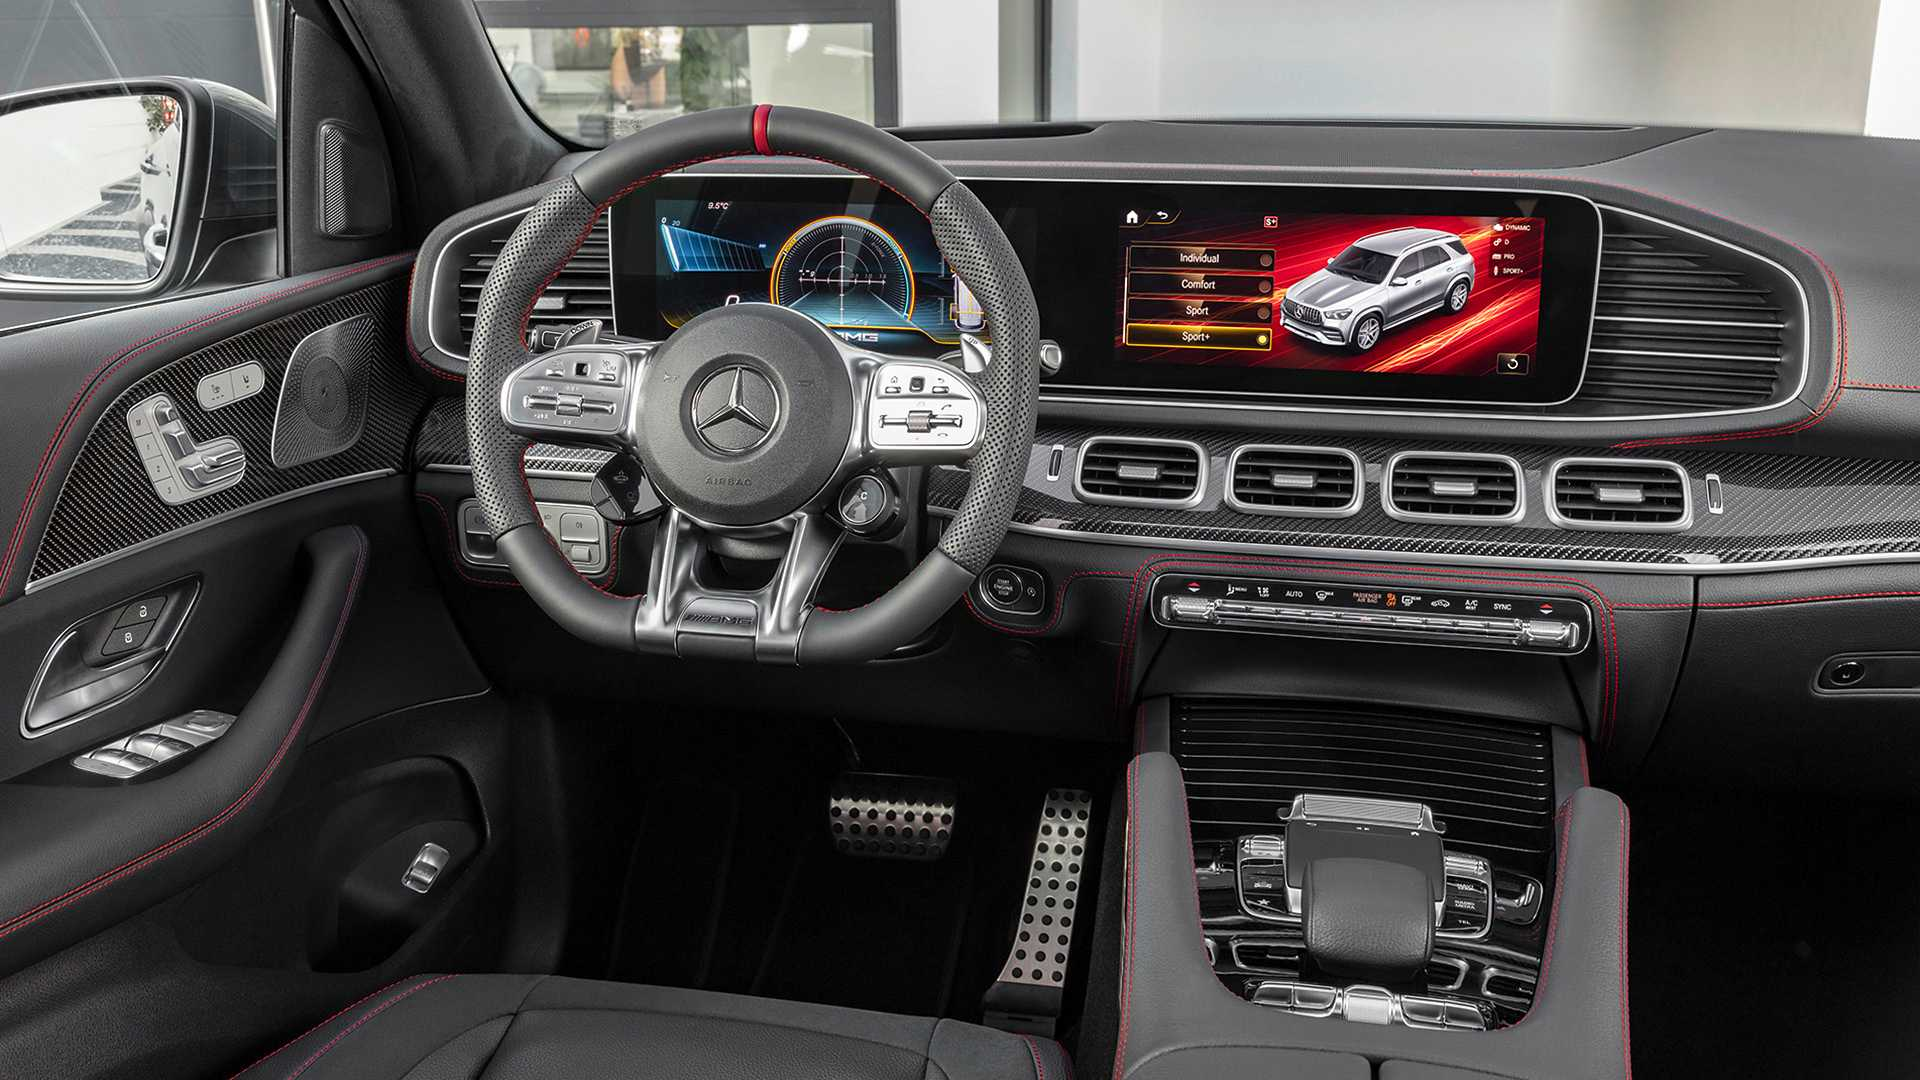 Mercedes-AMG GLE 53 is a performance SUV with seven seats